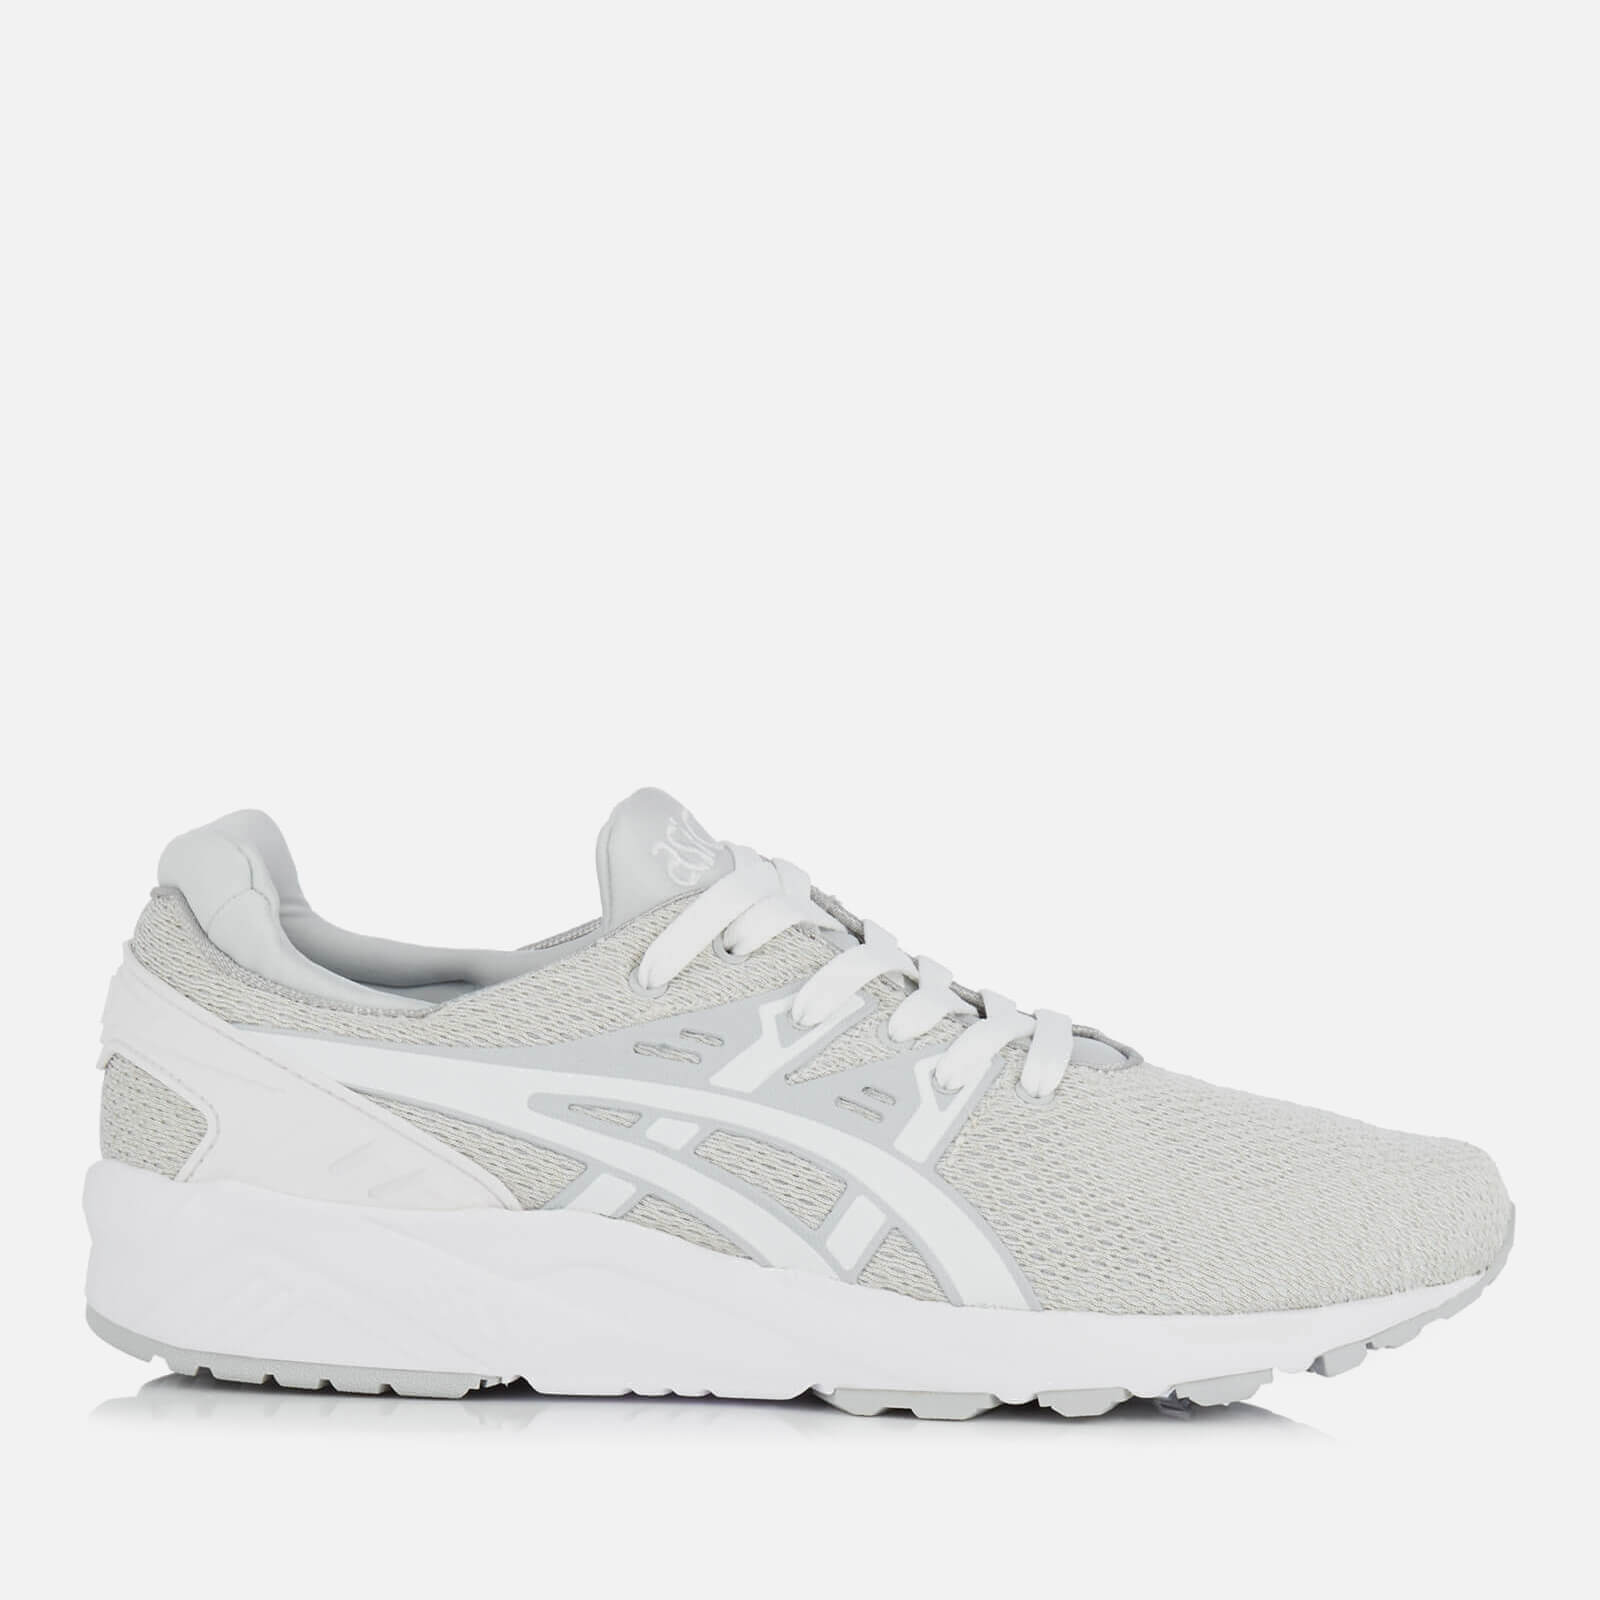 b174f74ea Asics Lifestyle Men s Gel-Kayano Evo Mesh Trainers - Grey White - Free UK  Delivery over £50